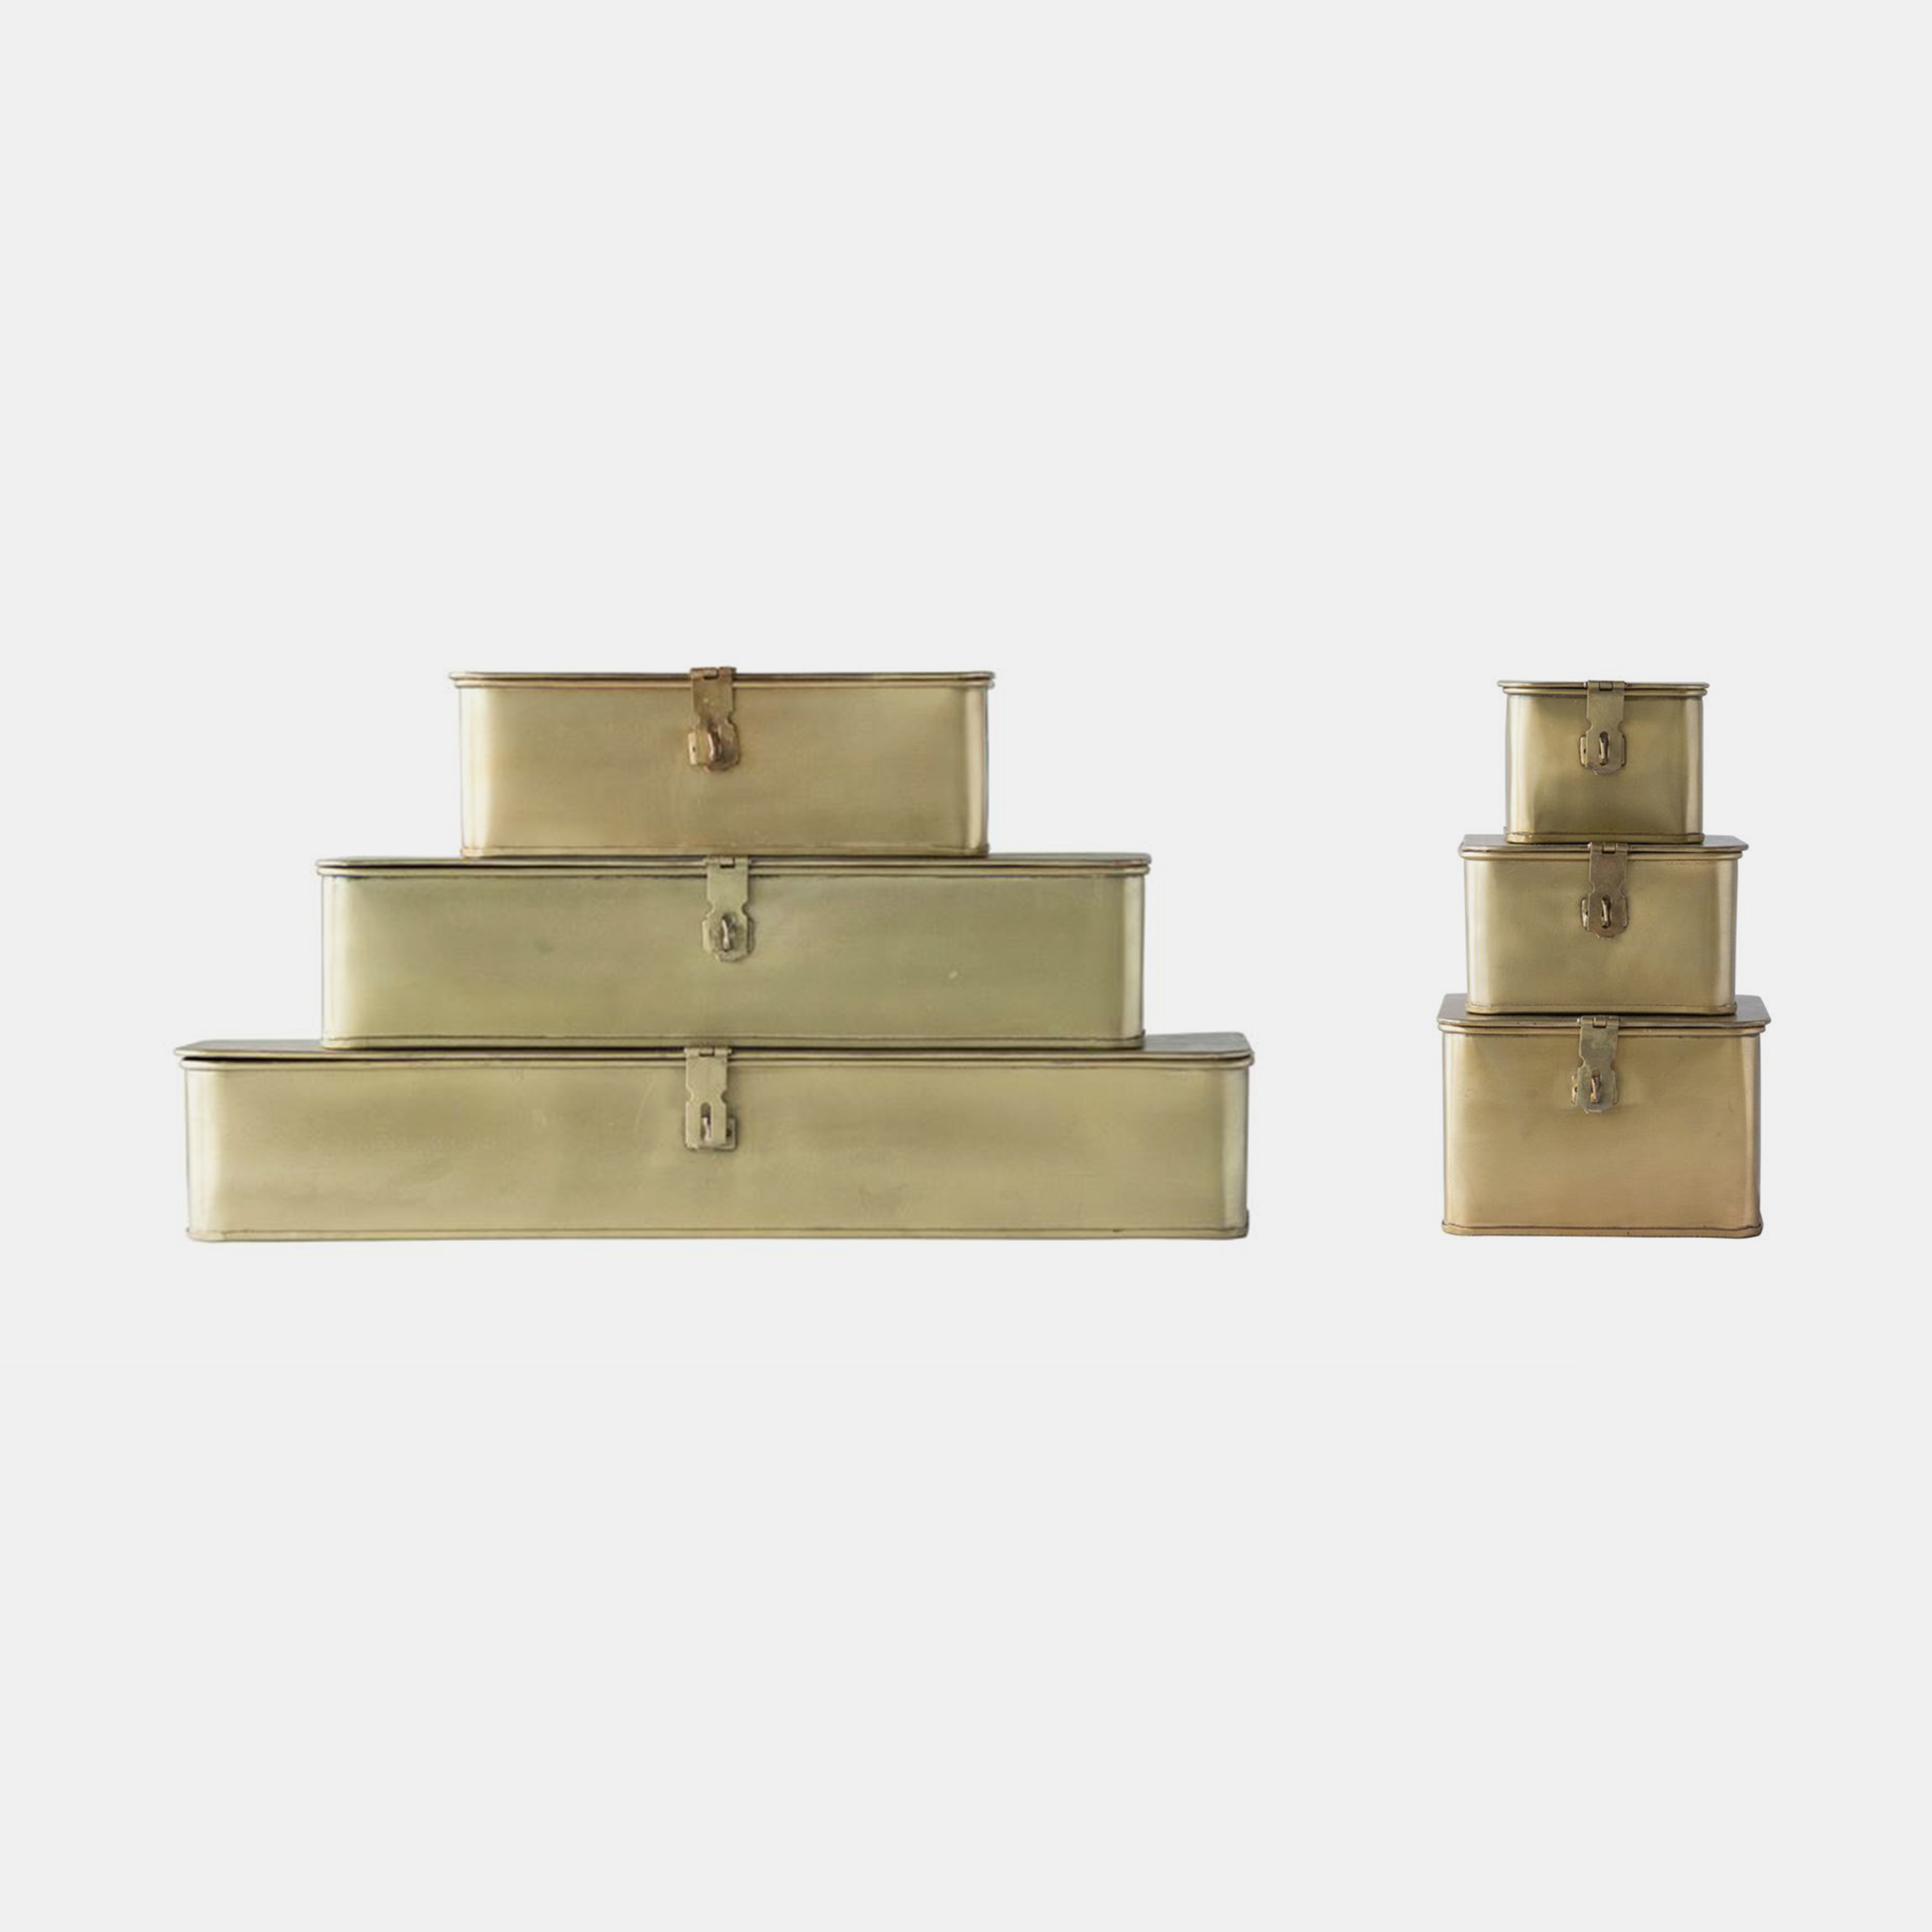 "Decorative Metal Boxes  20.5""l, 16""l & 10.5""l 7""sq, 6""sq & 4.5""sq SKU58294CCO"